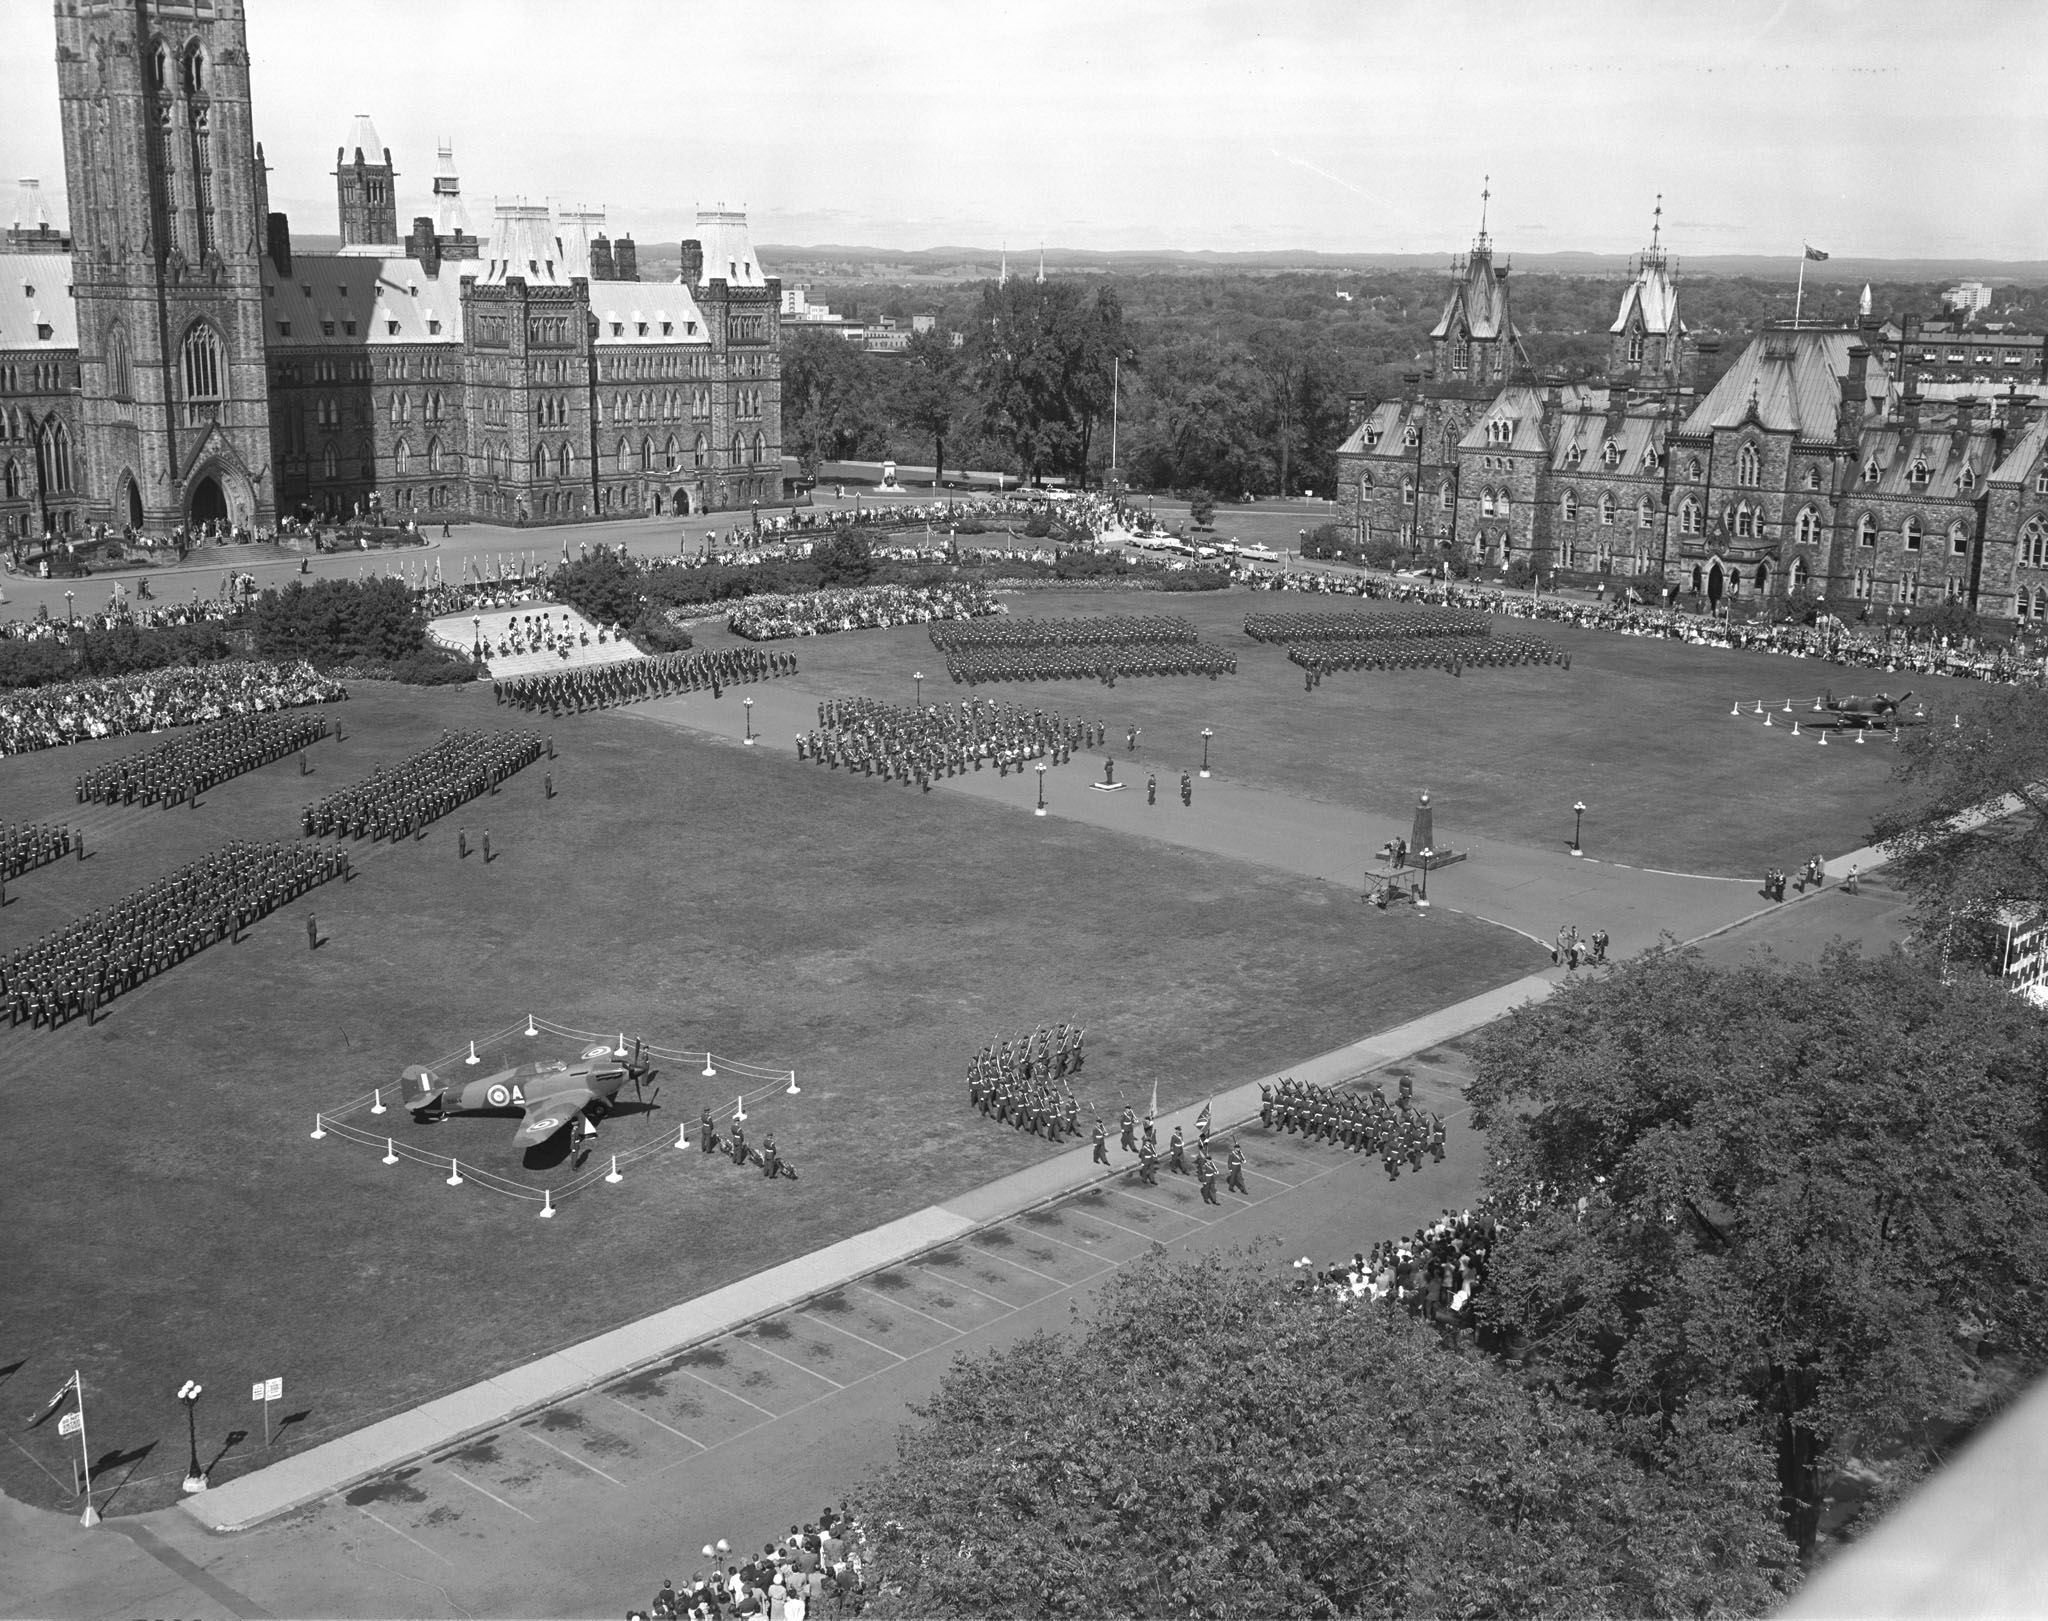 An aerial view of the 1960 Battle of Britain parade on Parliament Hill in Ottawa. PHOTO: PL-129394, DND Archives